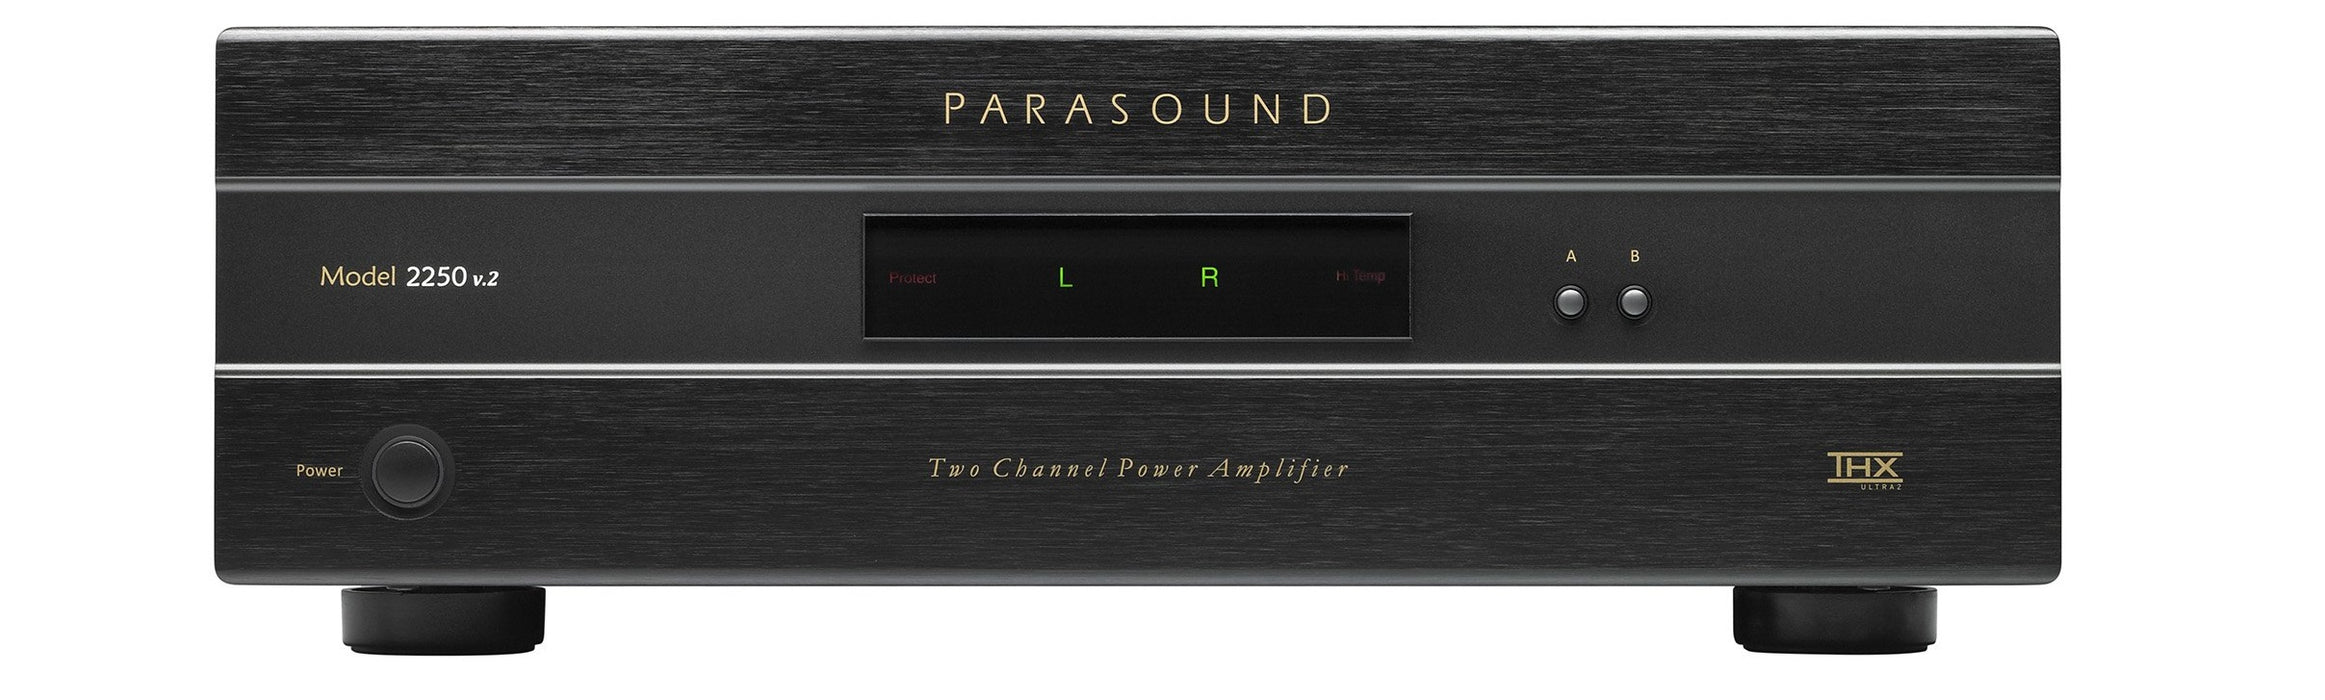 Parasound 2250v.2 Two Channel Power Amplifier B-Stock - Safe and Sound HQ